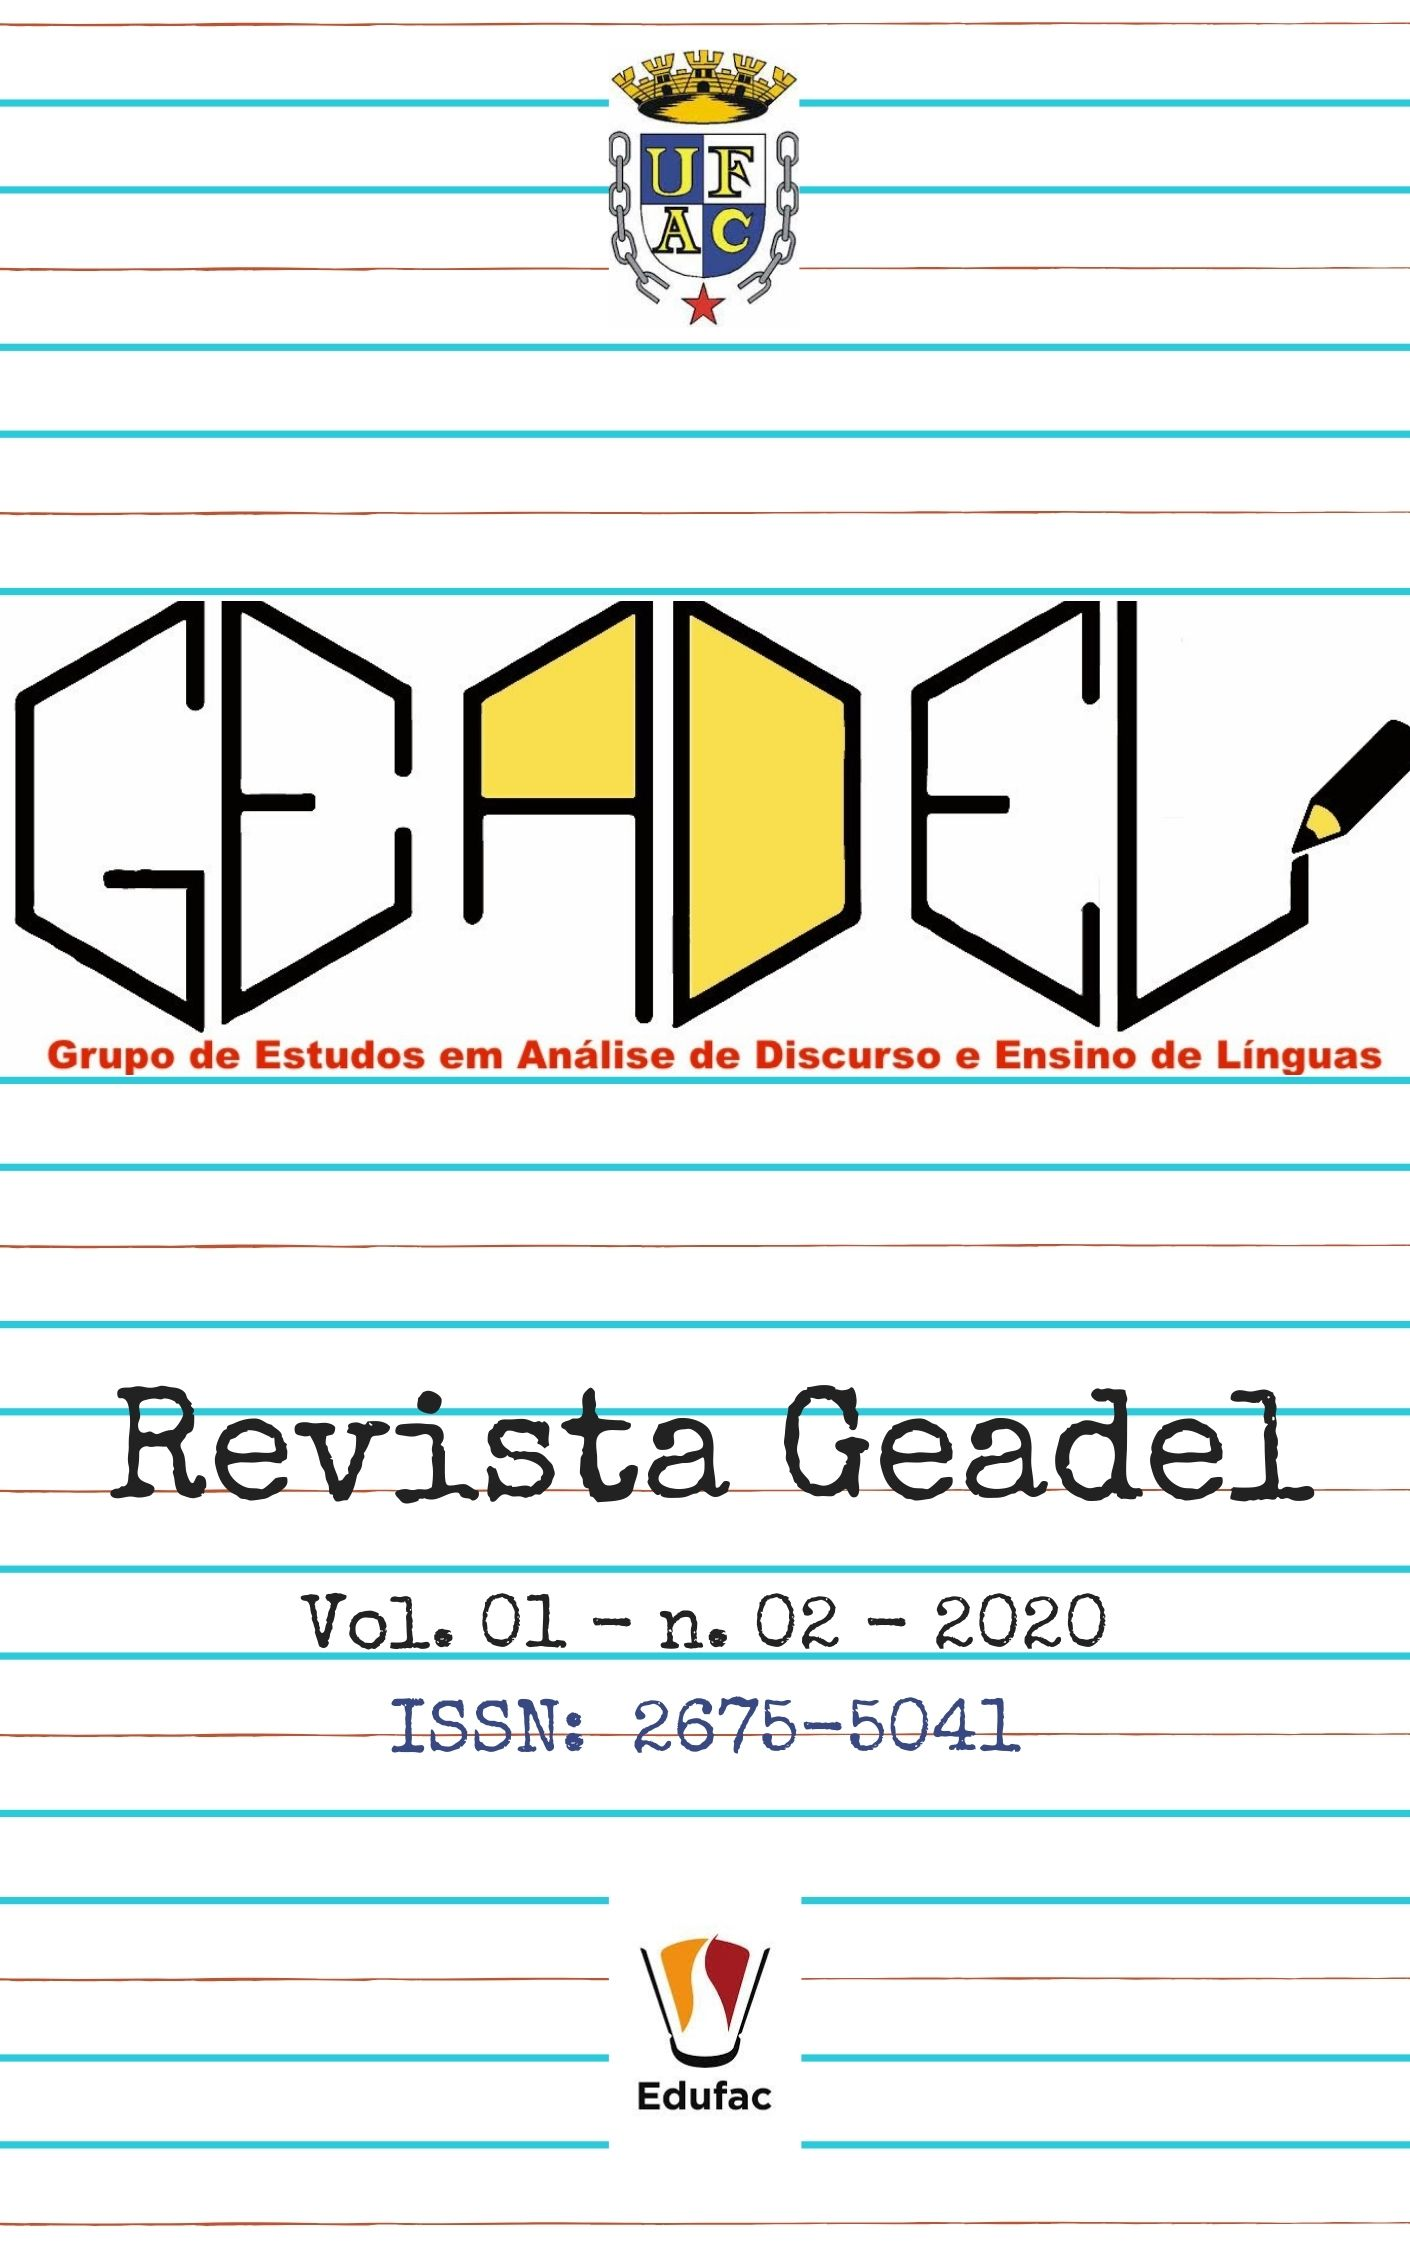 Visualizar v. 1 n. 02 (2020): Revista Geadel